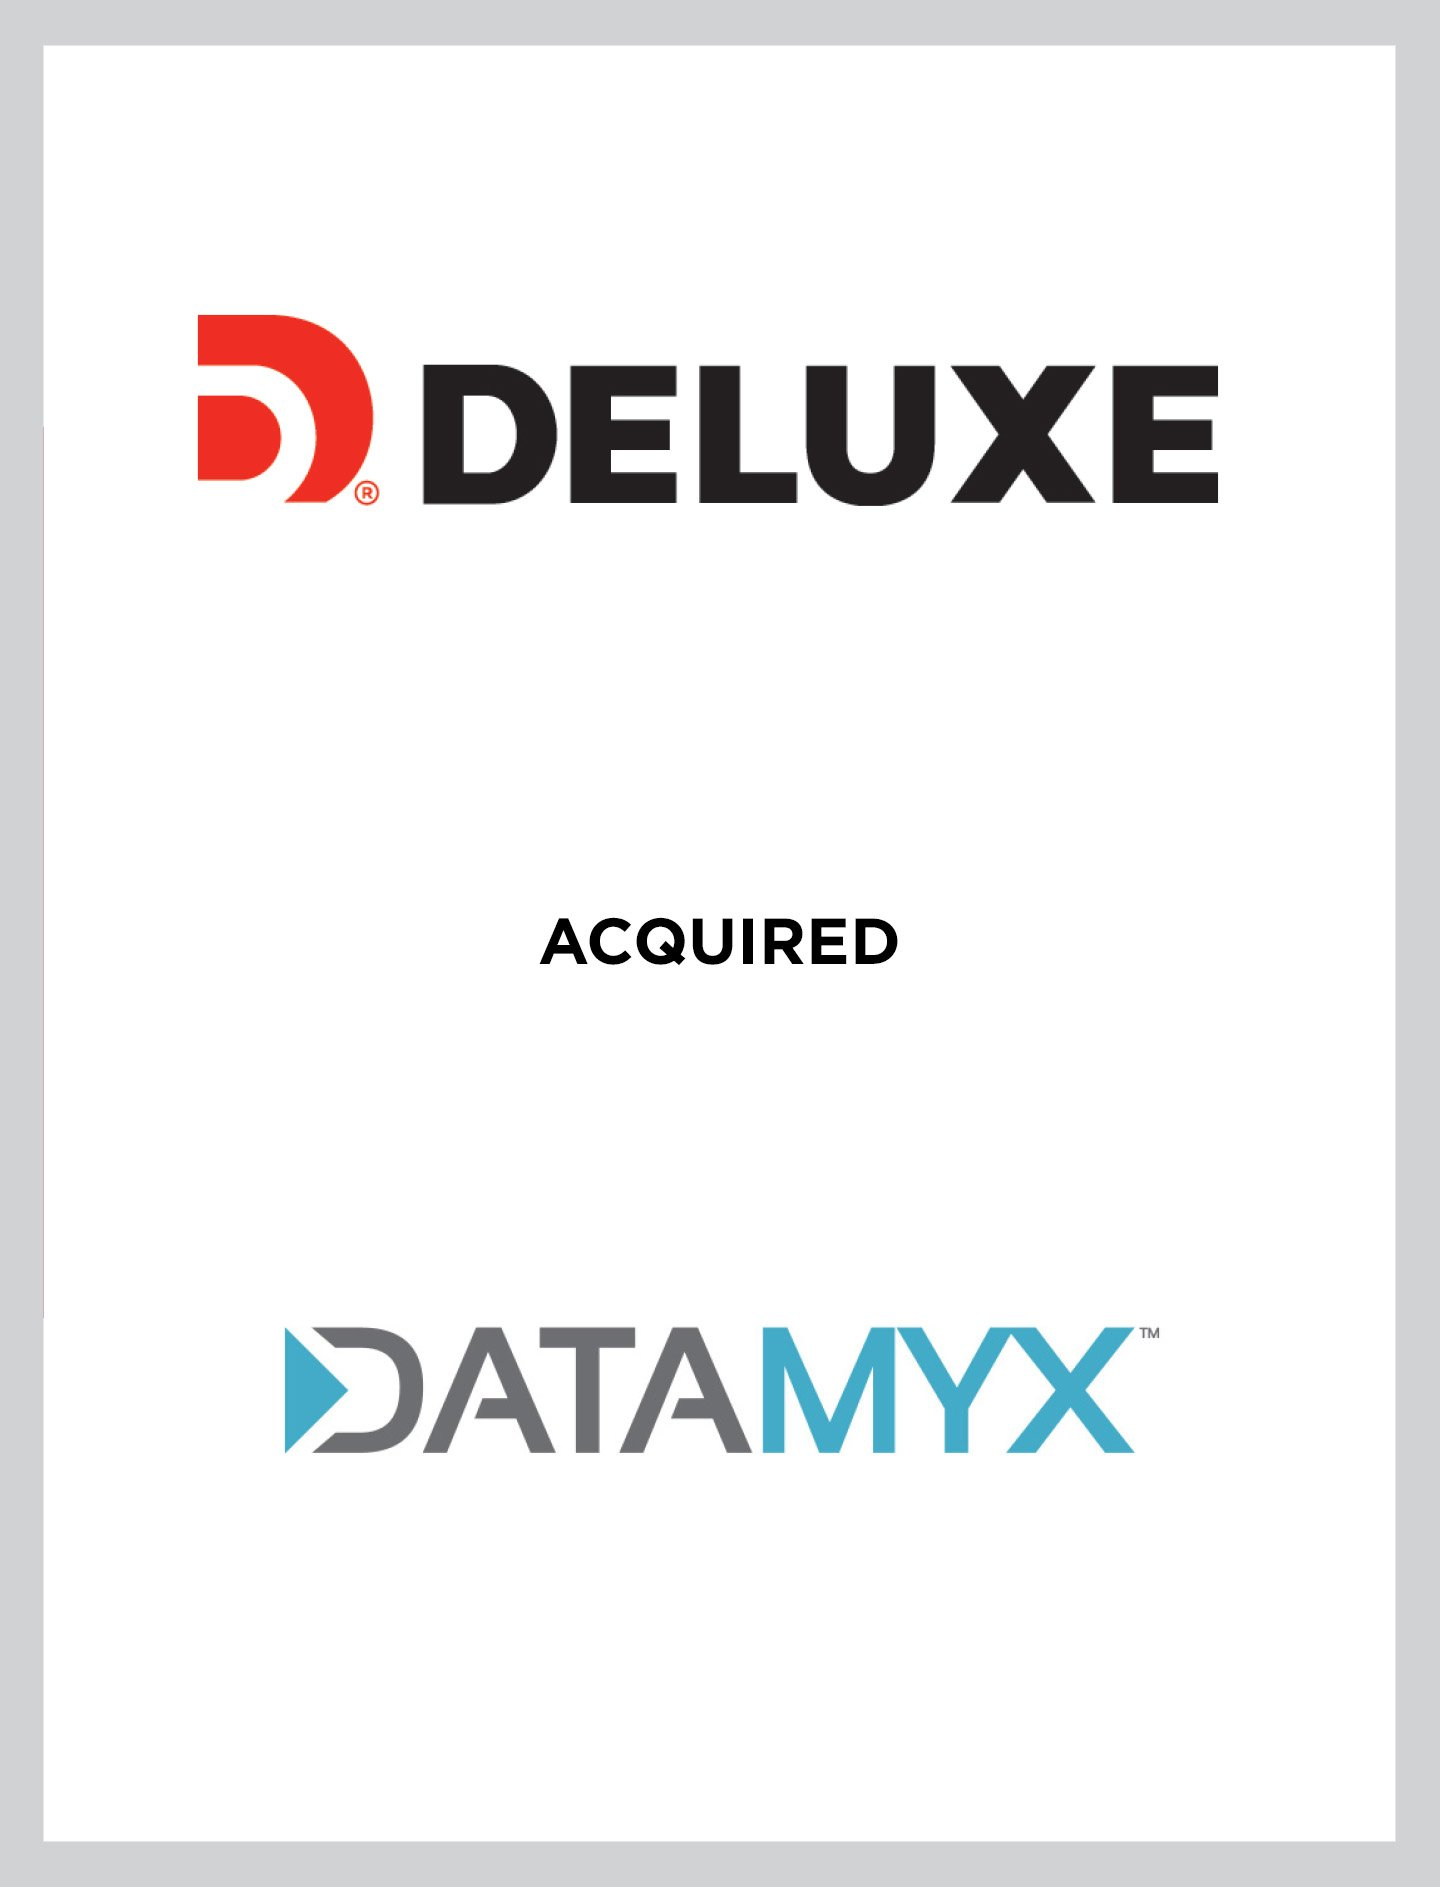 Deluxe/Datamyx Case Study